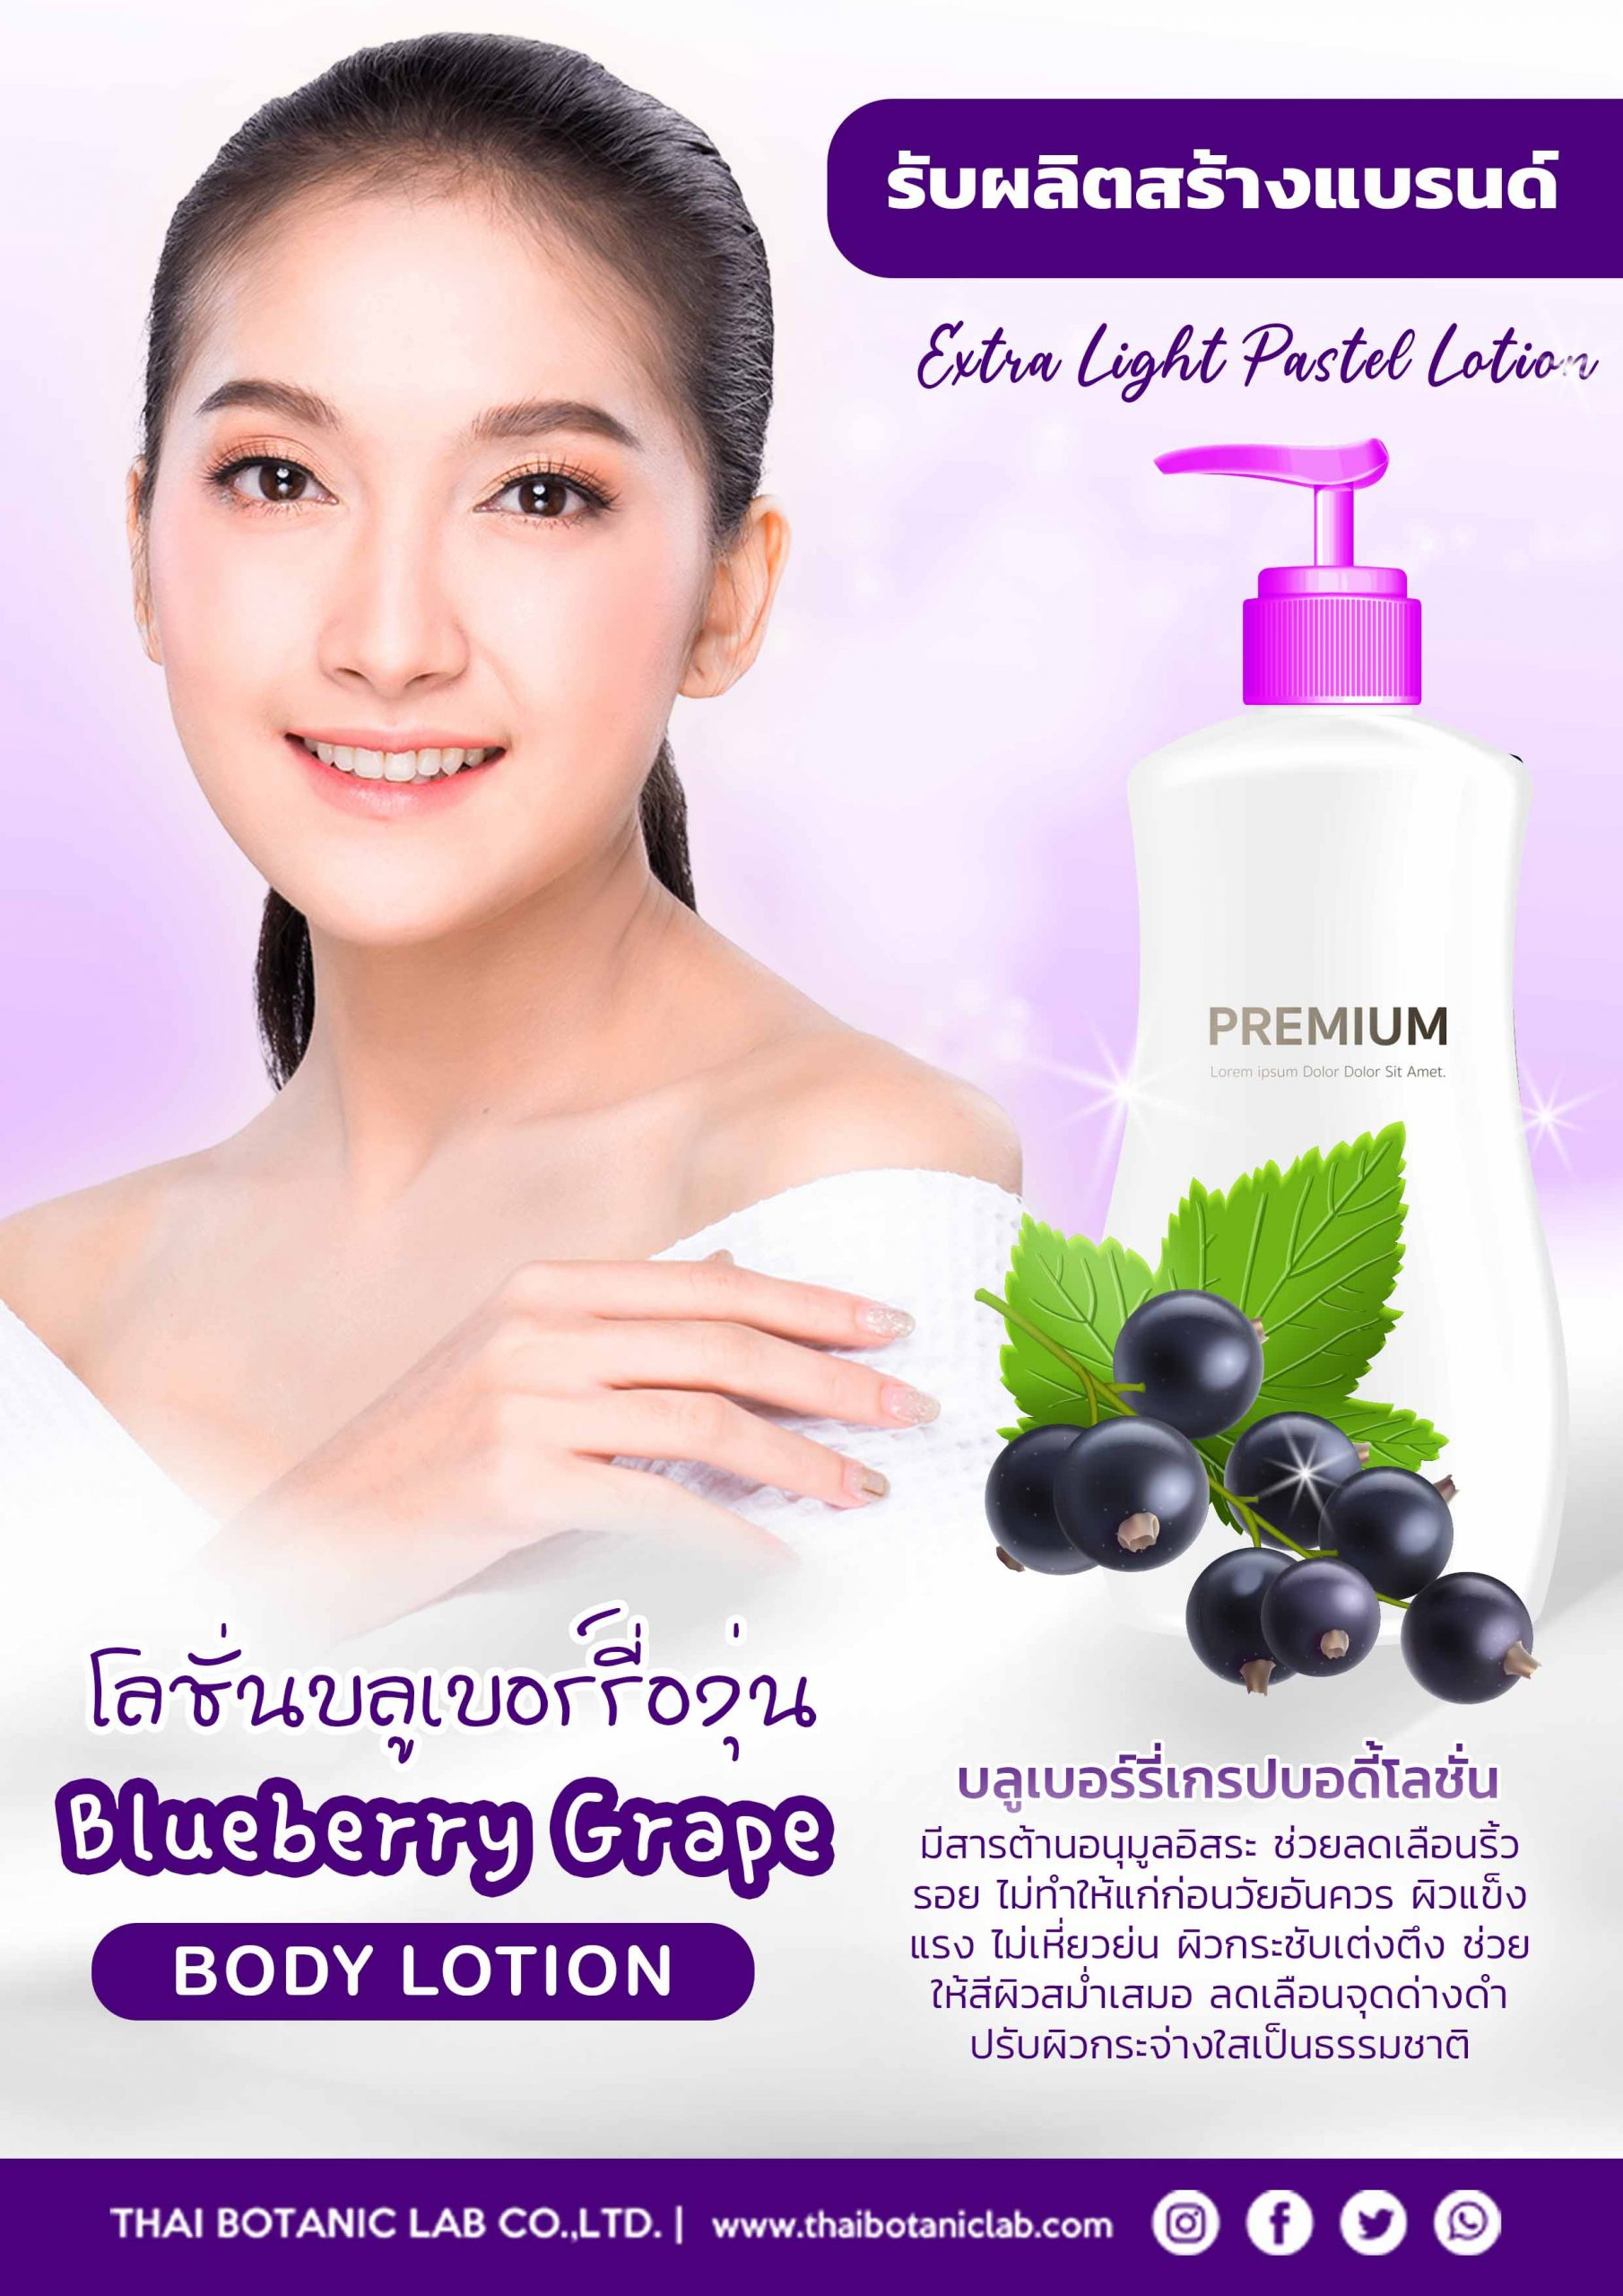 blueberry-grape-pastel-lotion-poster